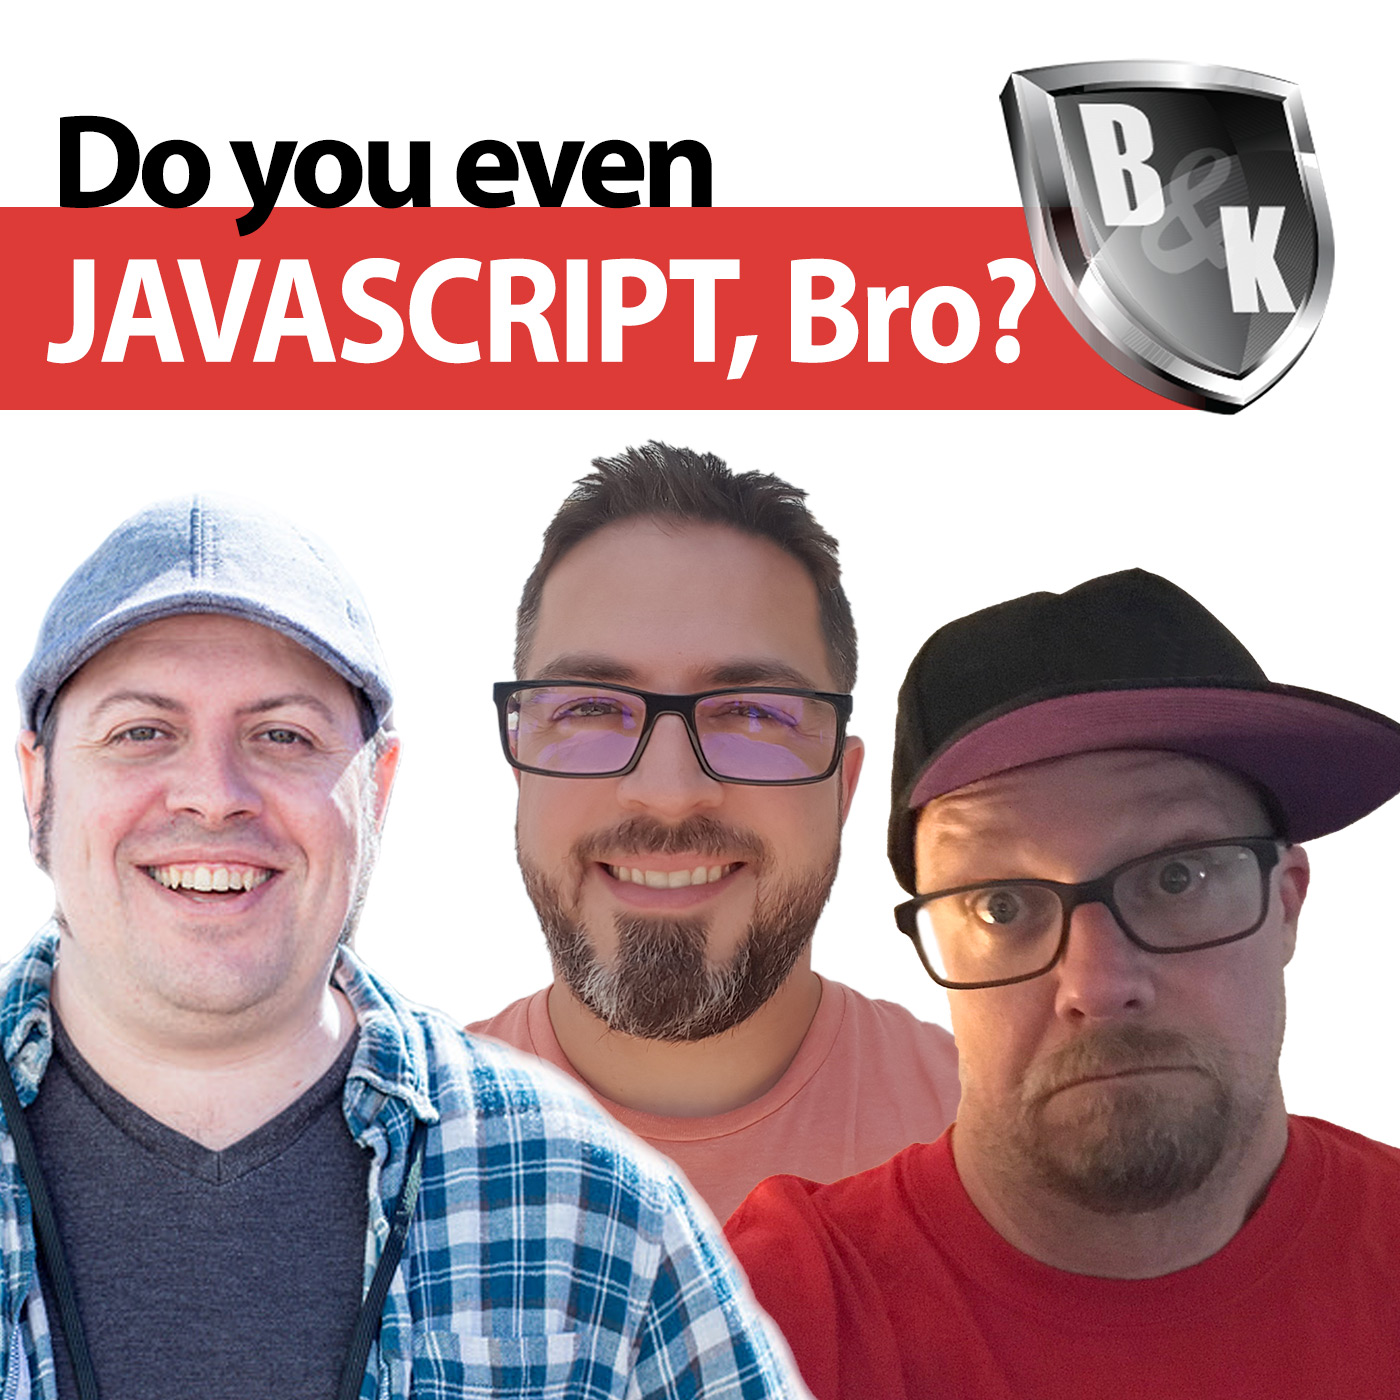 Ep. 011 - Do you even javascript, bro? - with Special Guest Kyle Weems